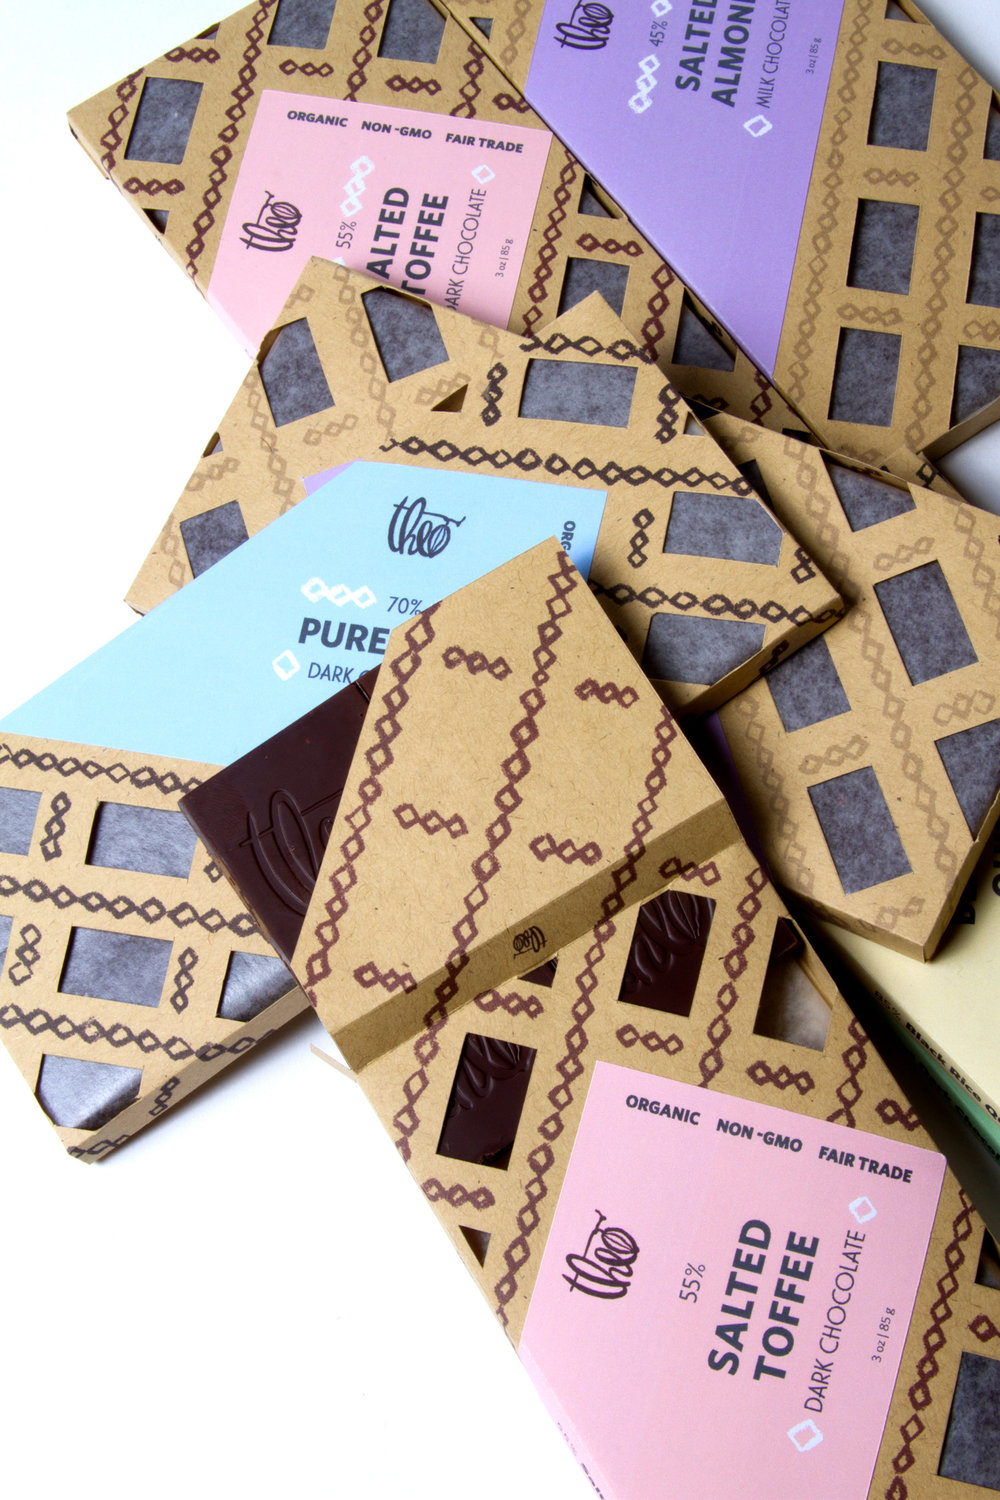 Caitlin-Mee_Theos-Chocolate-Packaging_5.jpg